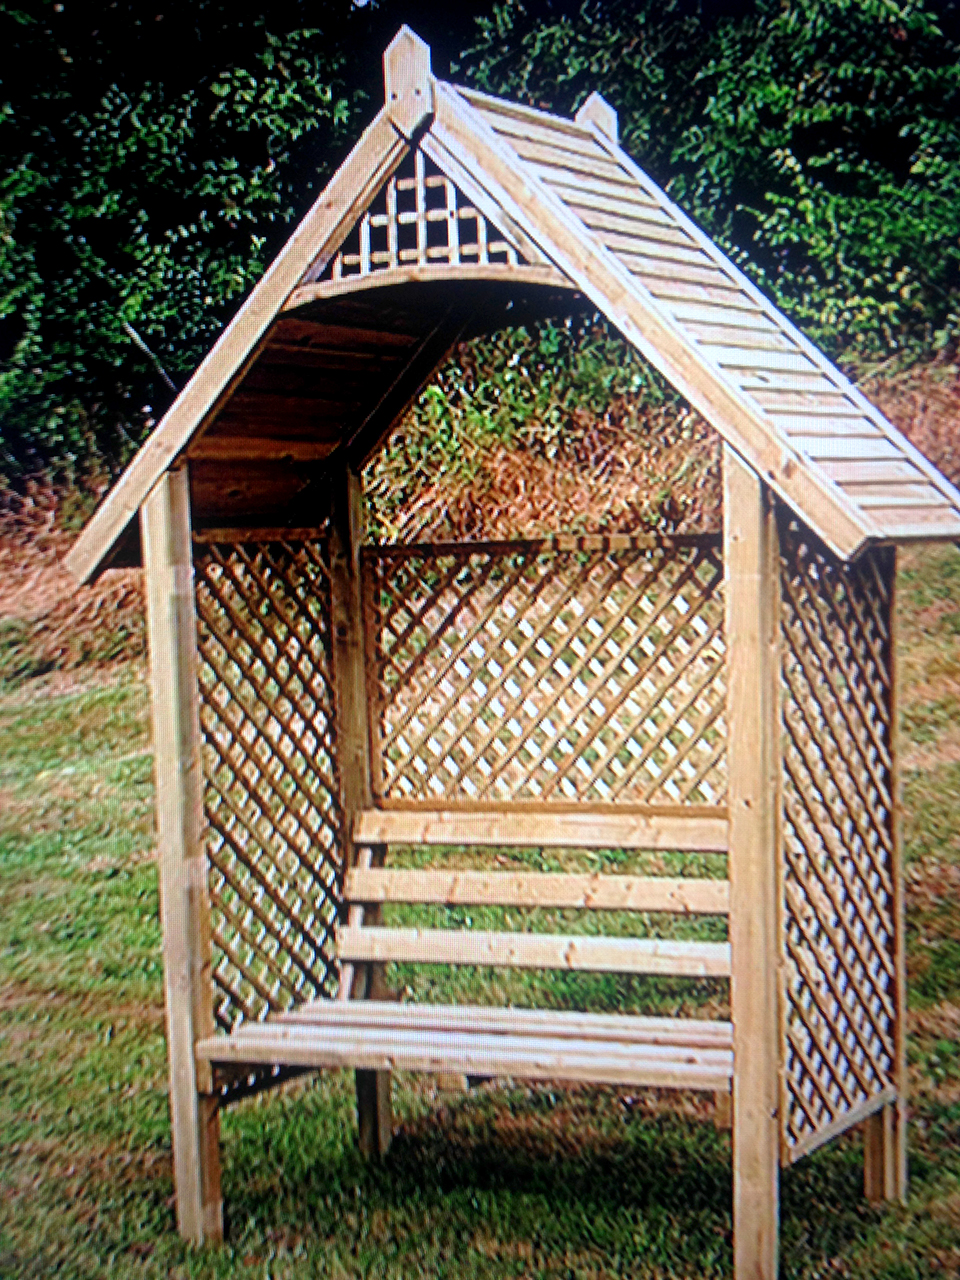 lattice-arbour.jpg